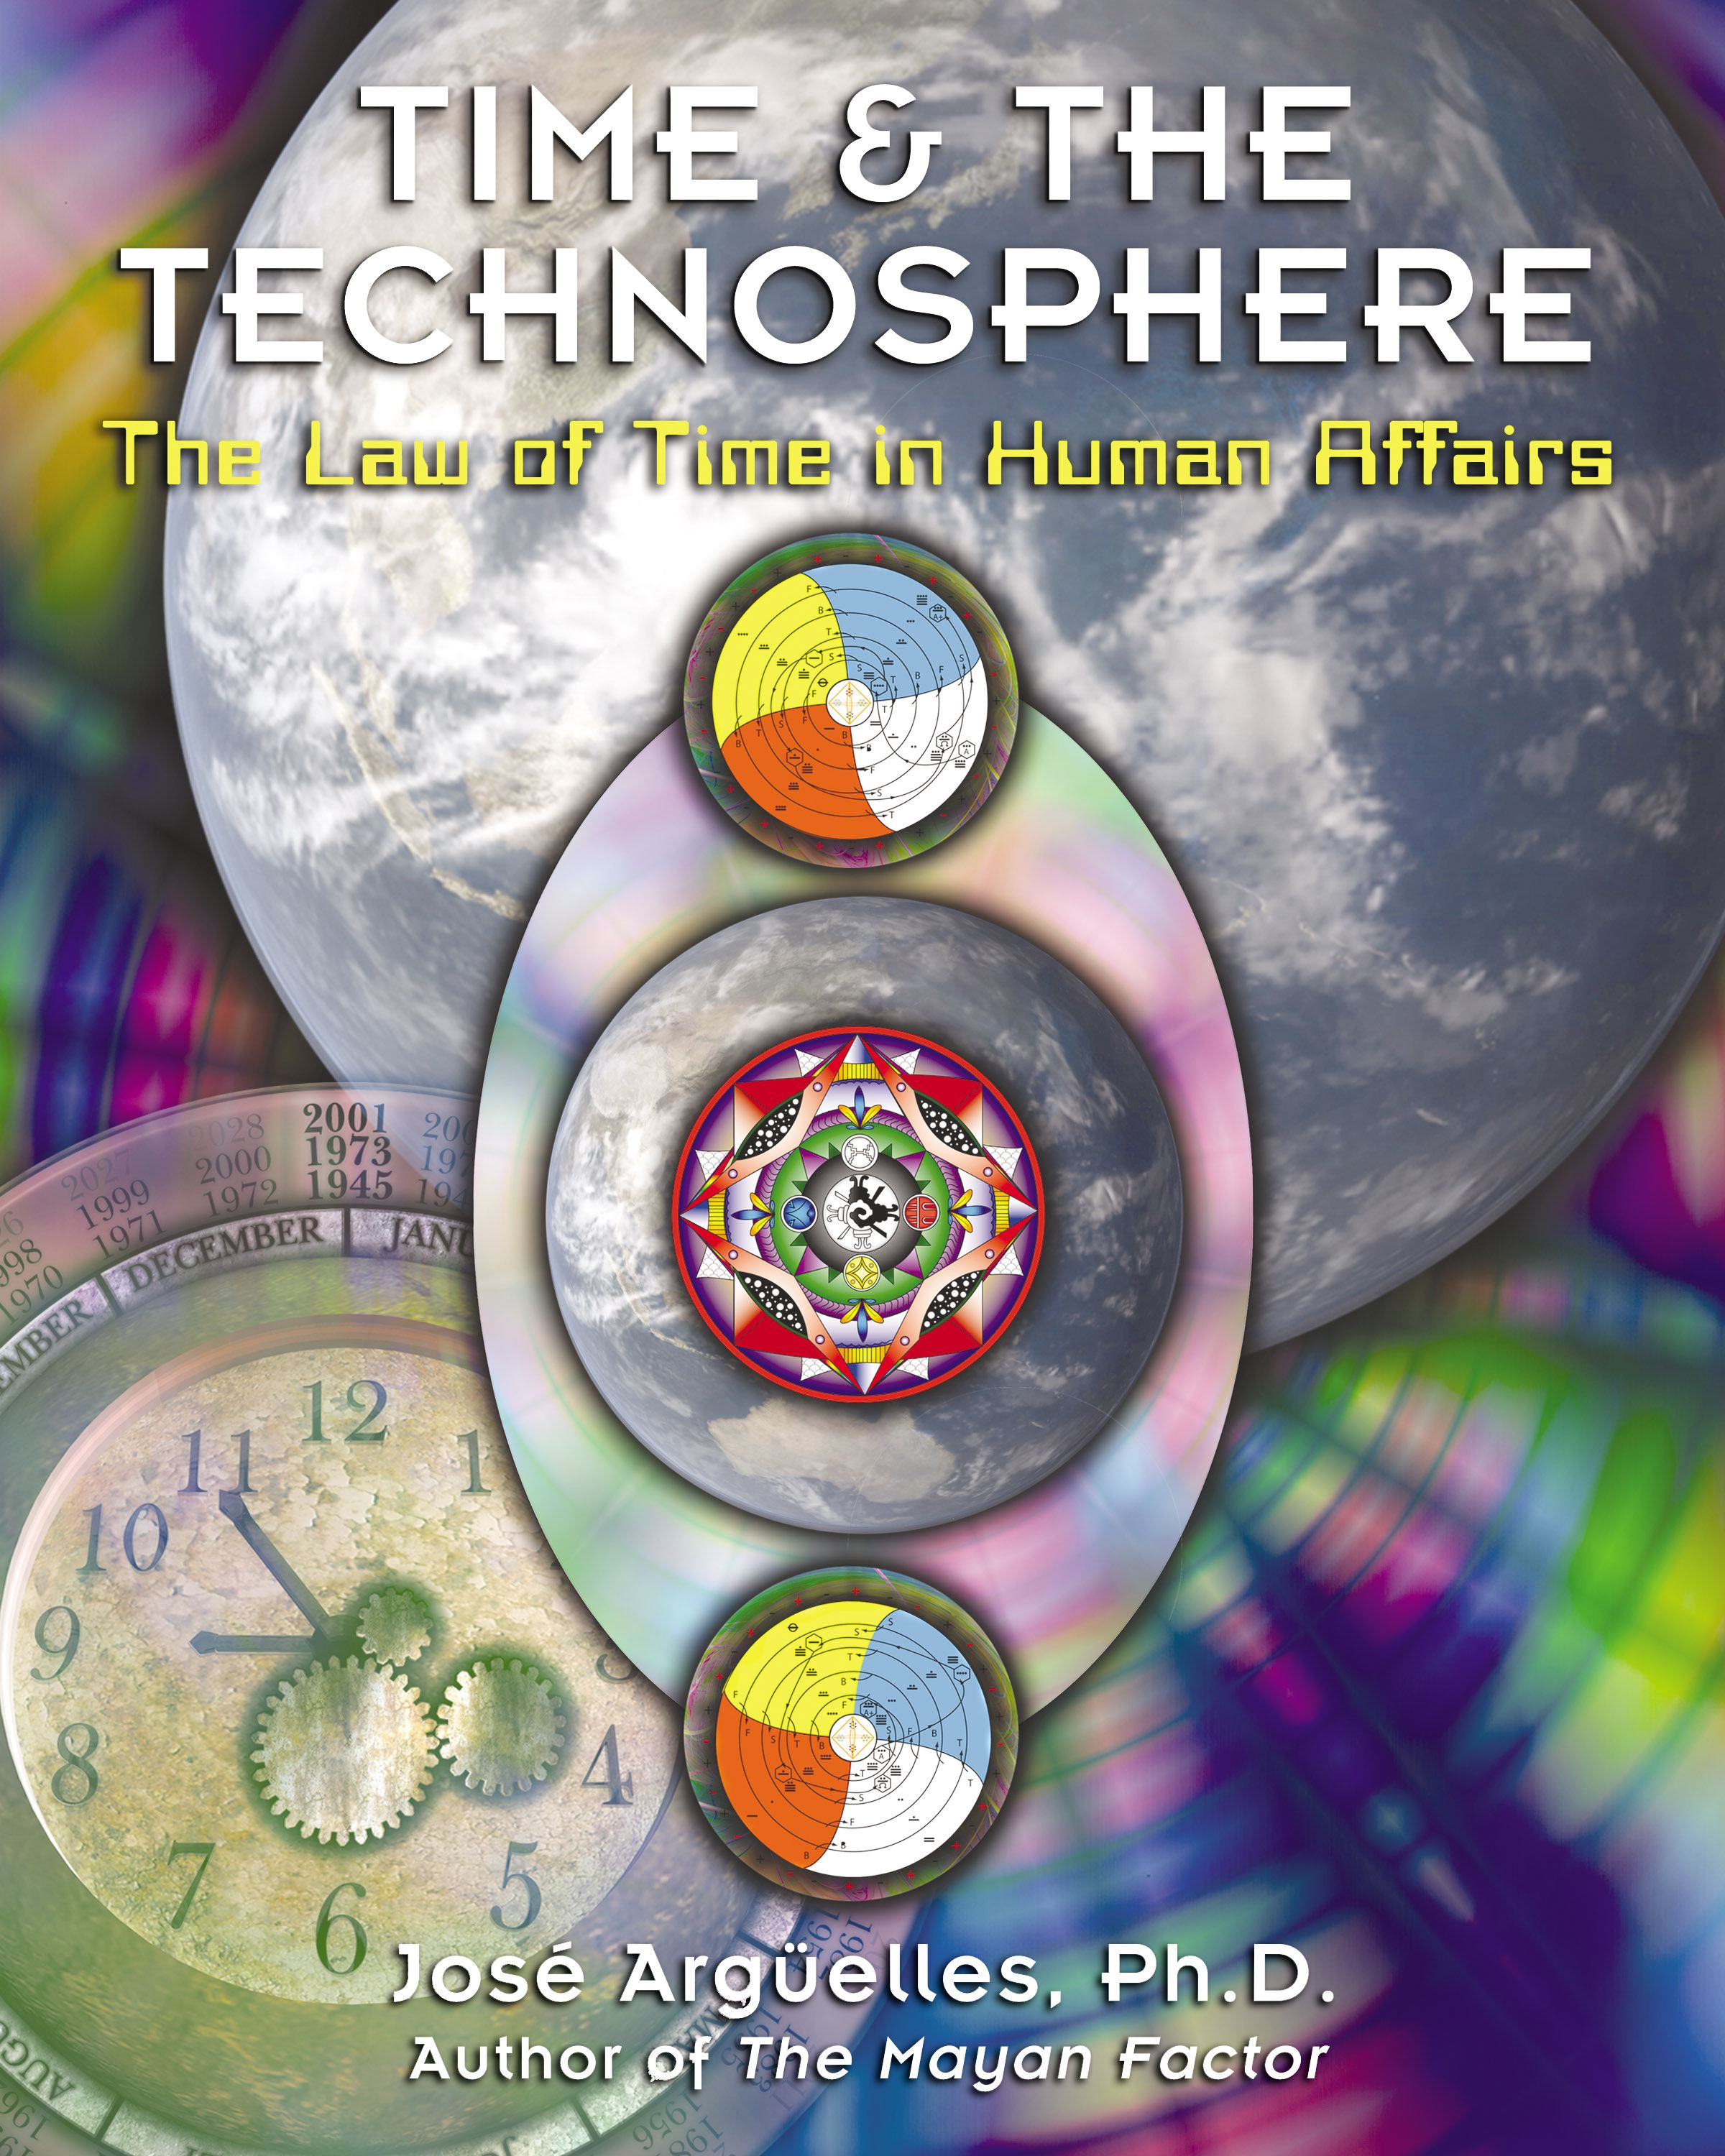 Time-and-the-technosphere-9781879181991_hr